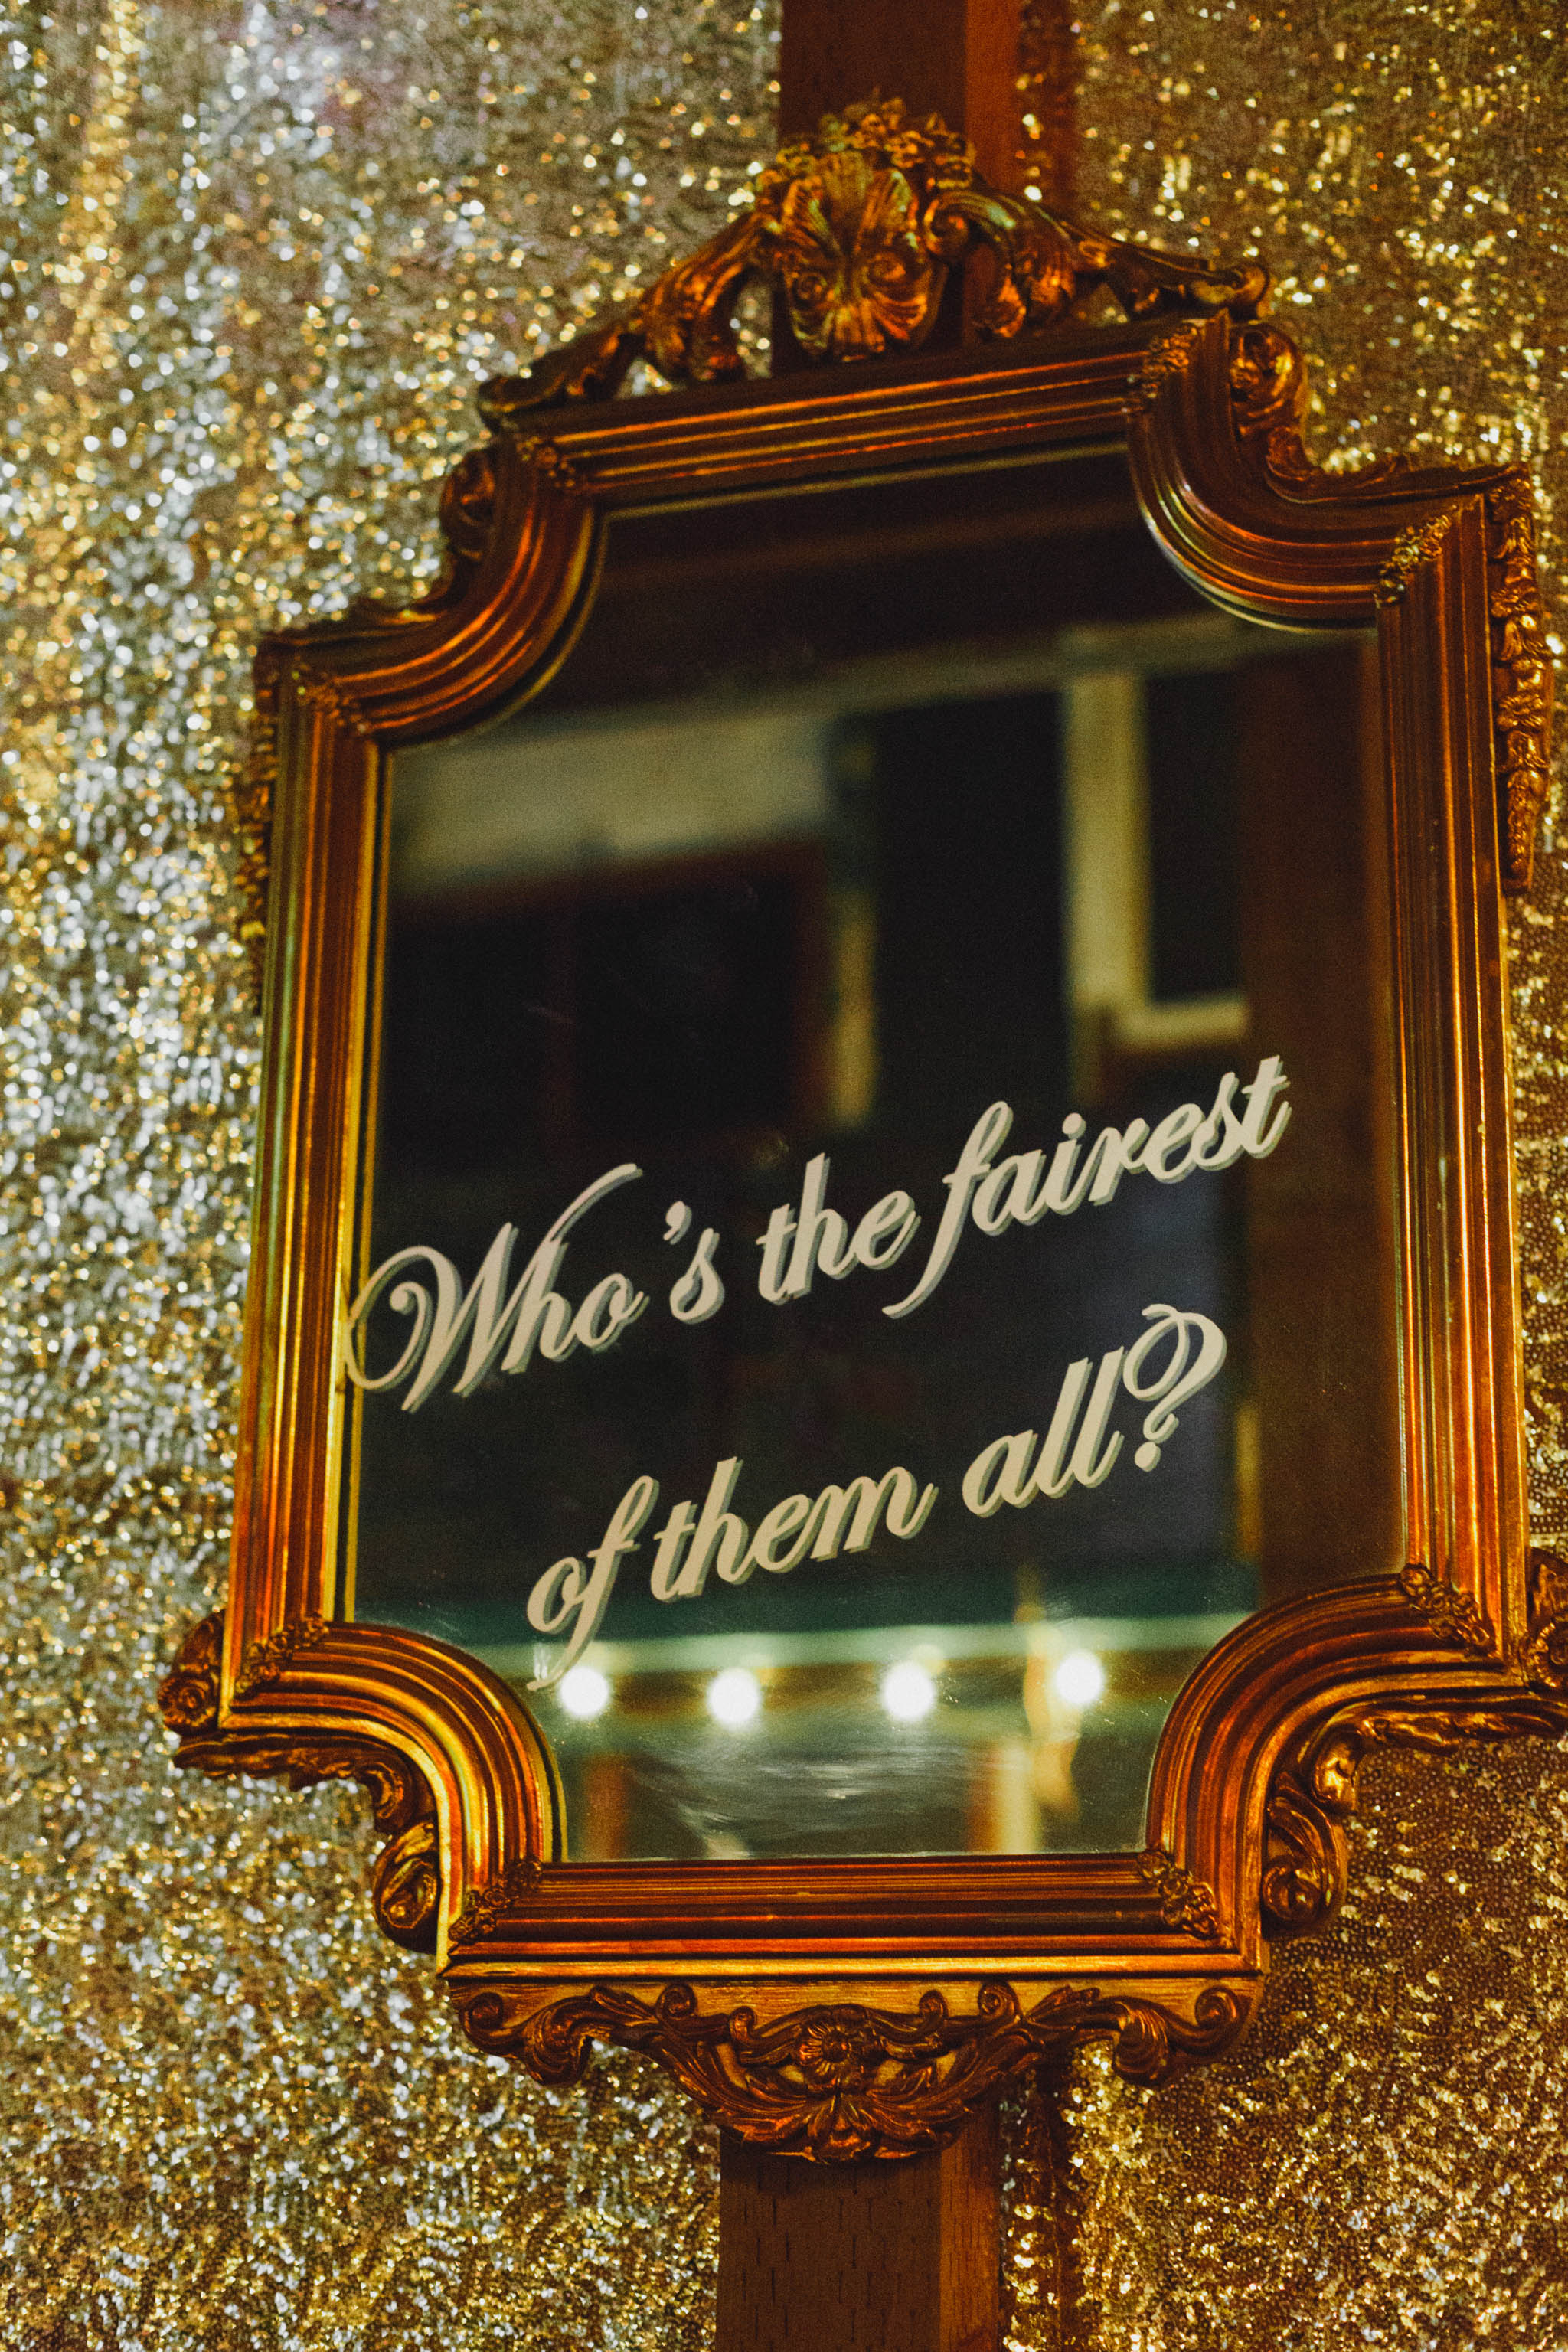 Who's the fairest of them all? Mirror at the Studio Collective in Grass Valley, CA